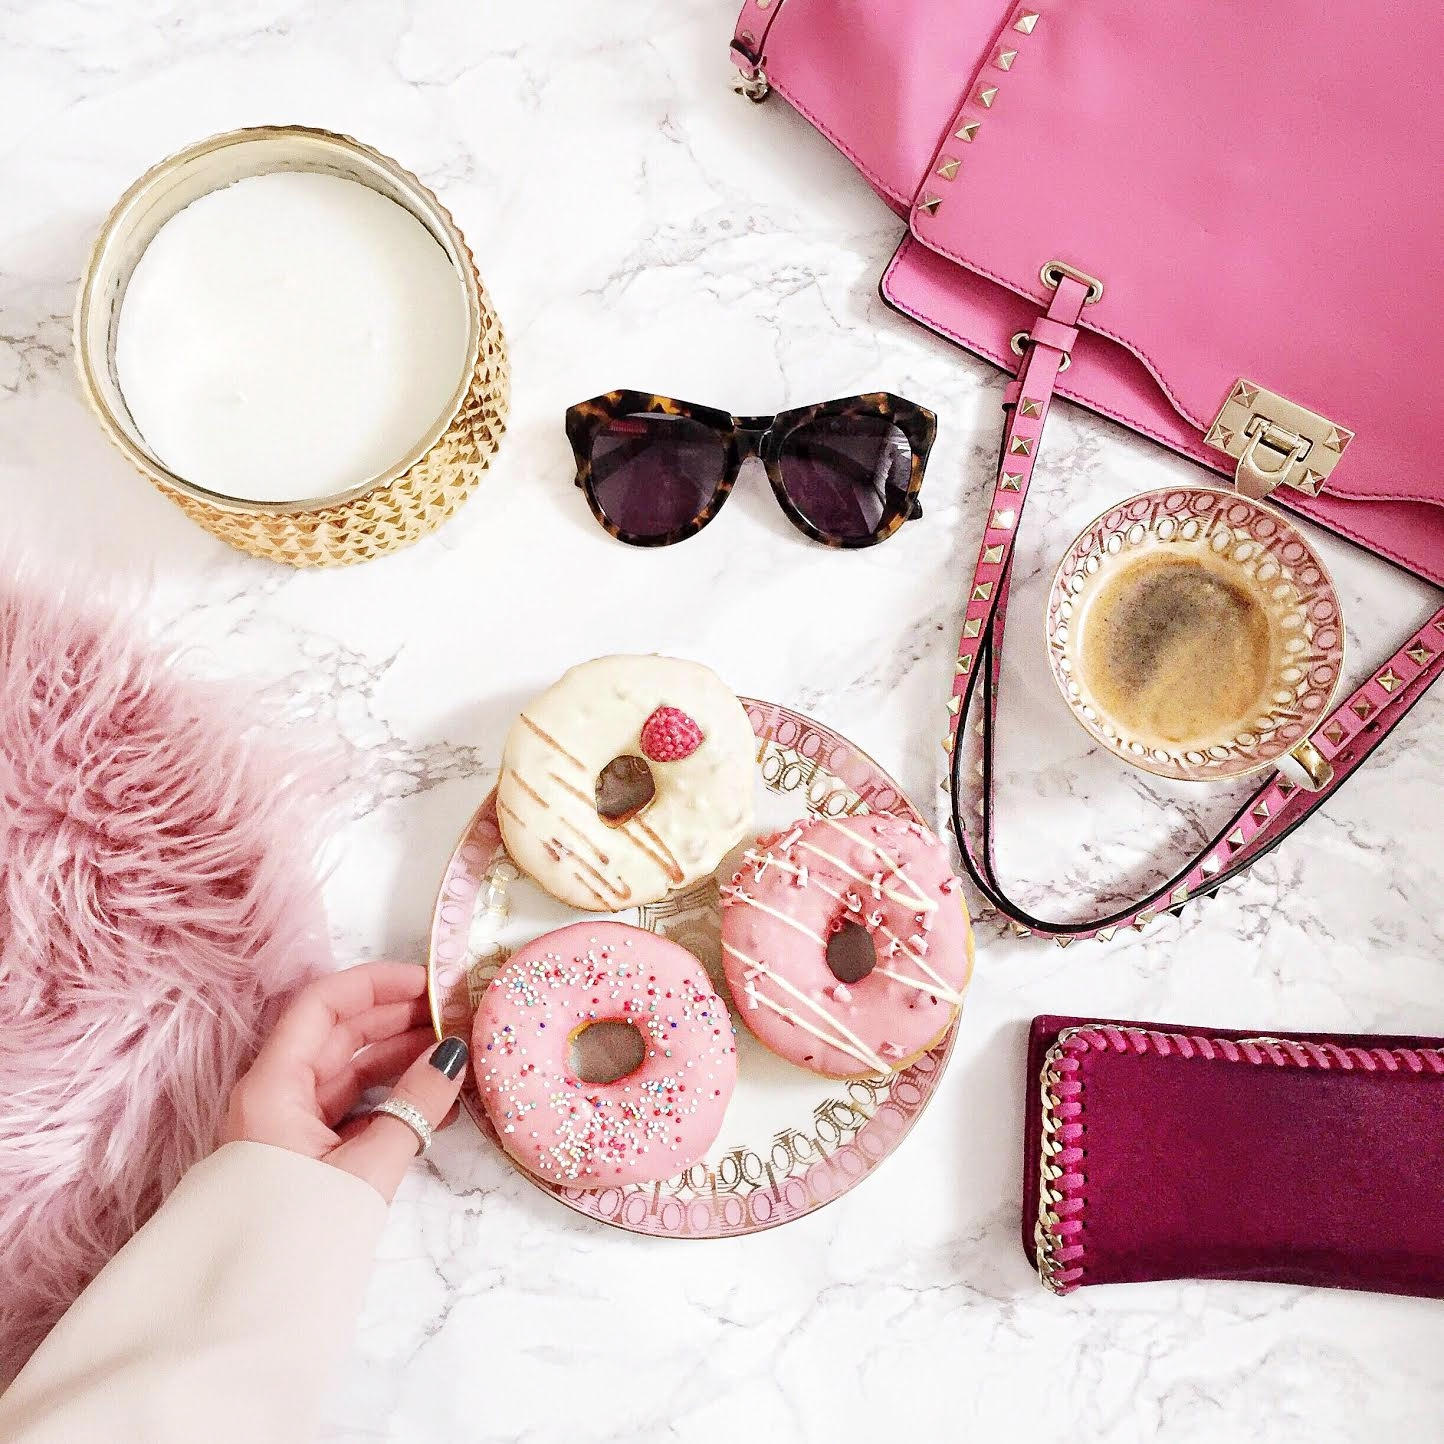 donut-valentino-rockstud-bag-coffee-table